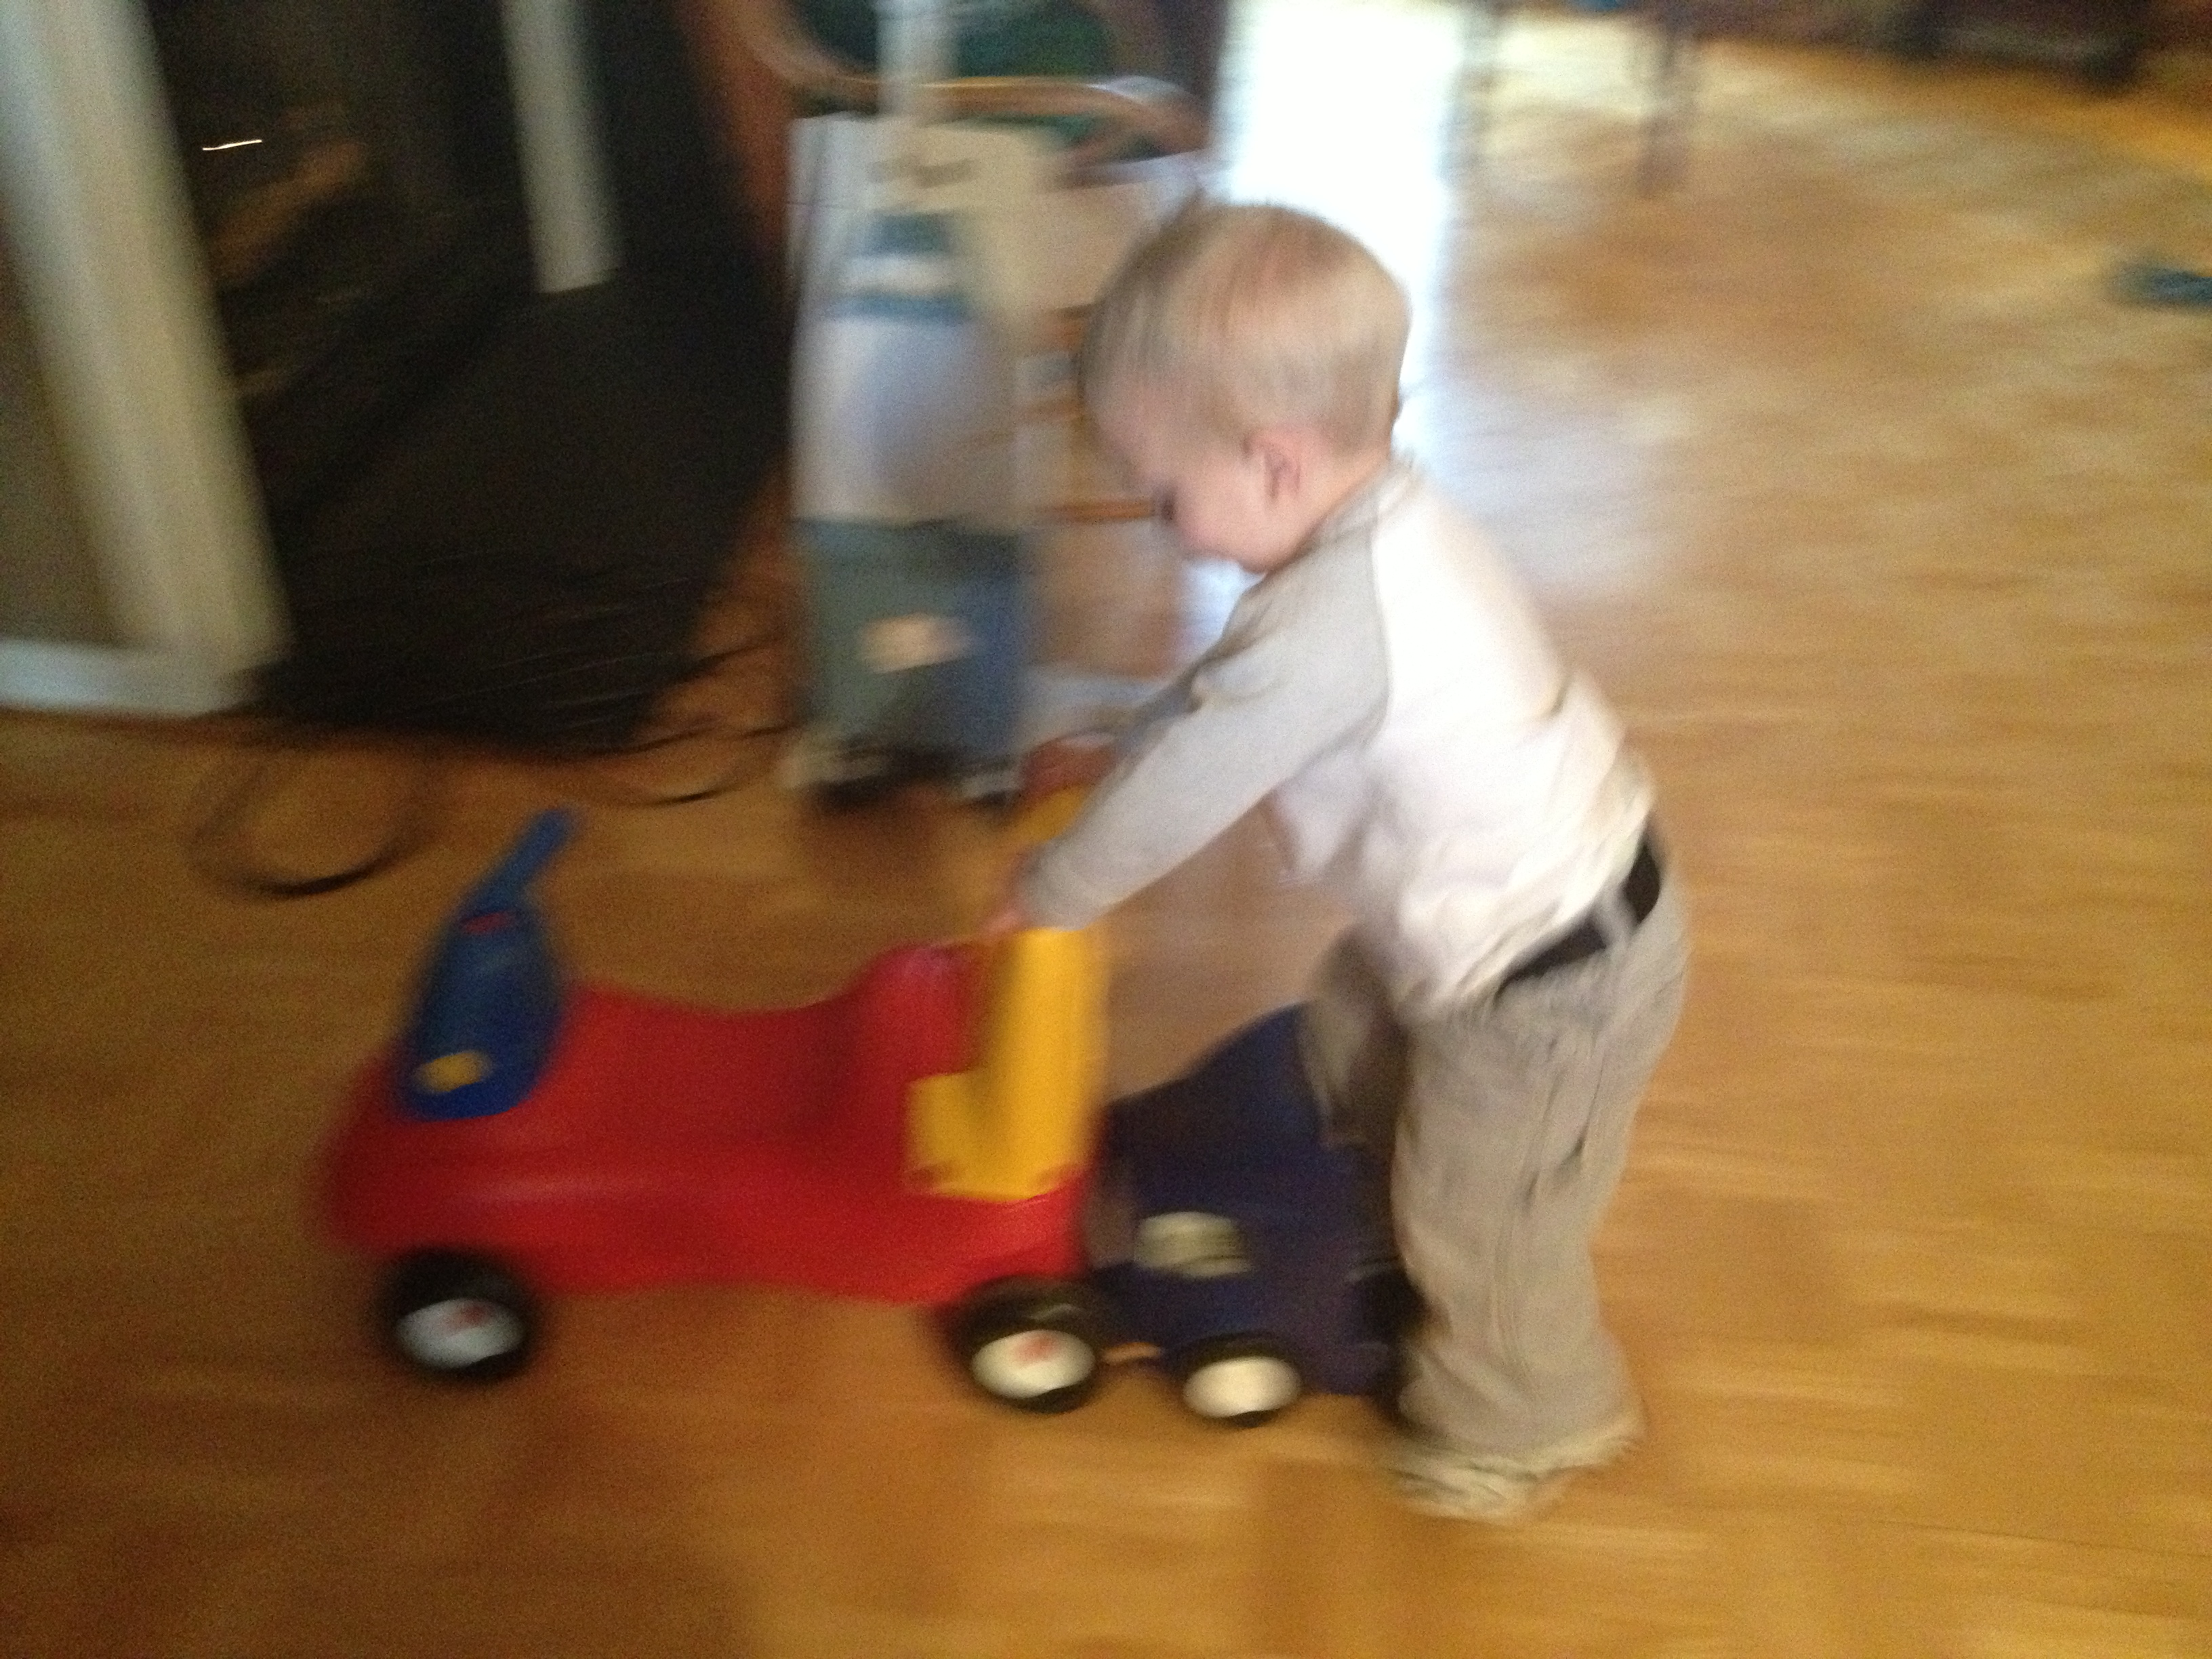 He was trying to keep up with the ride on in front. Sometimes he tries to ride the trucks like rollerskates.